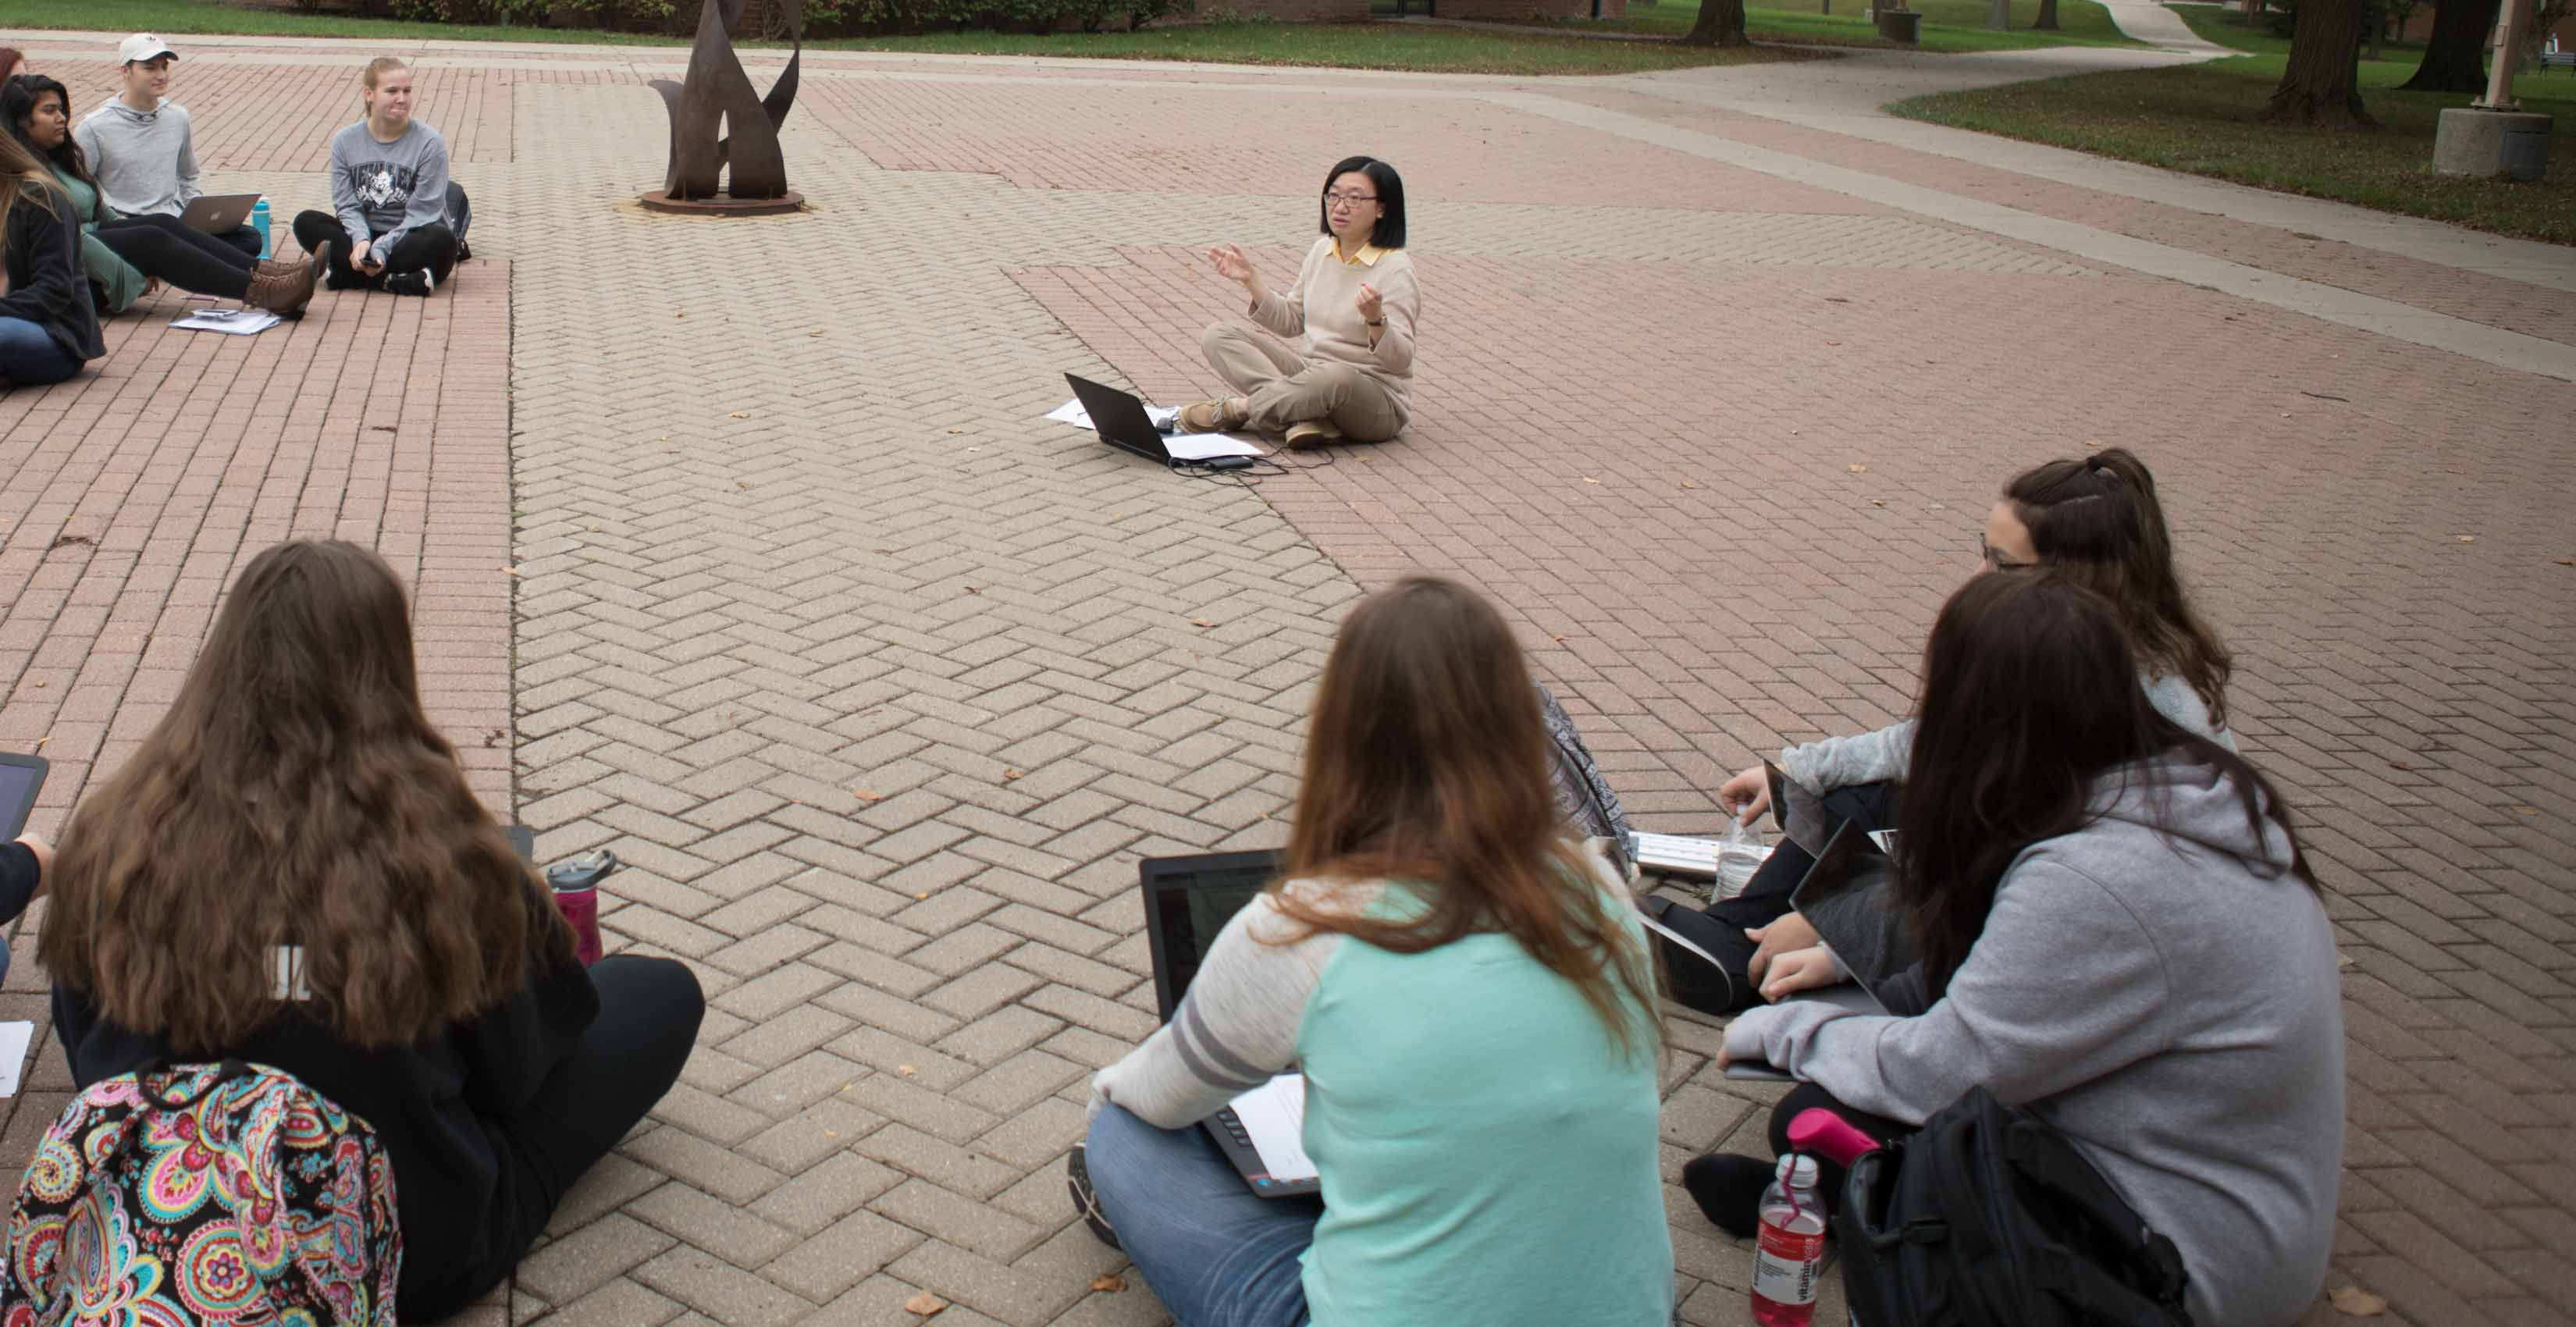 Humanities class outside of heterick memorial library